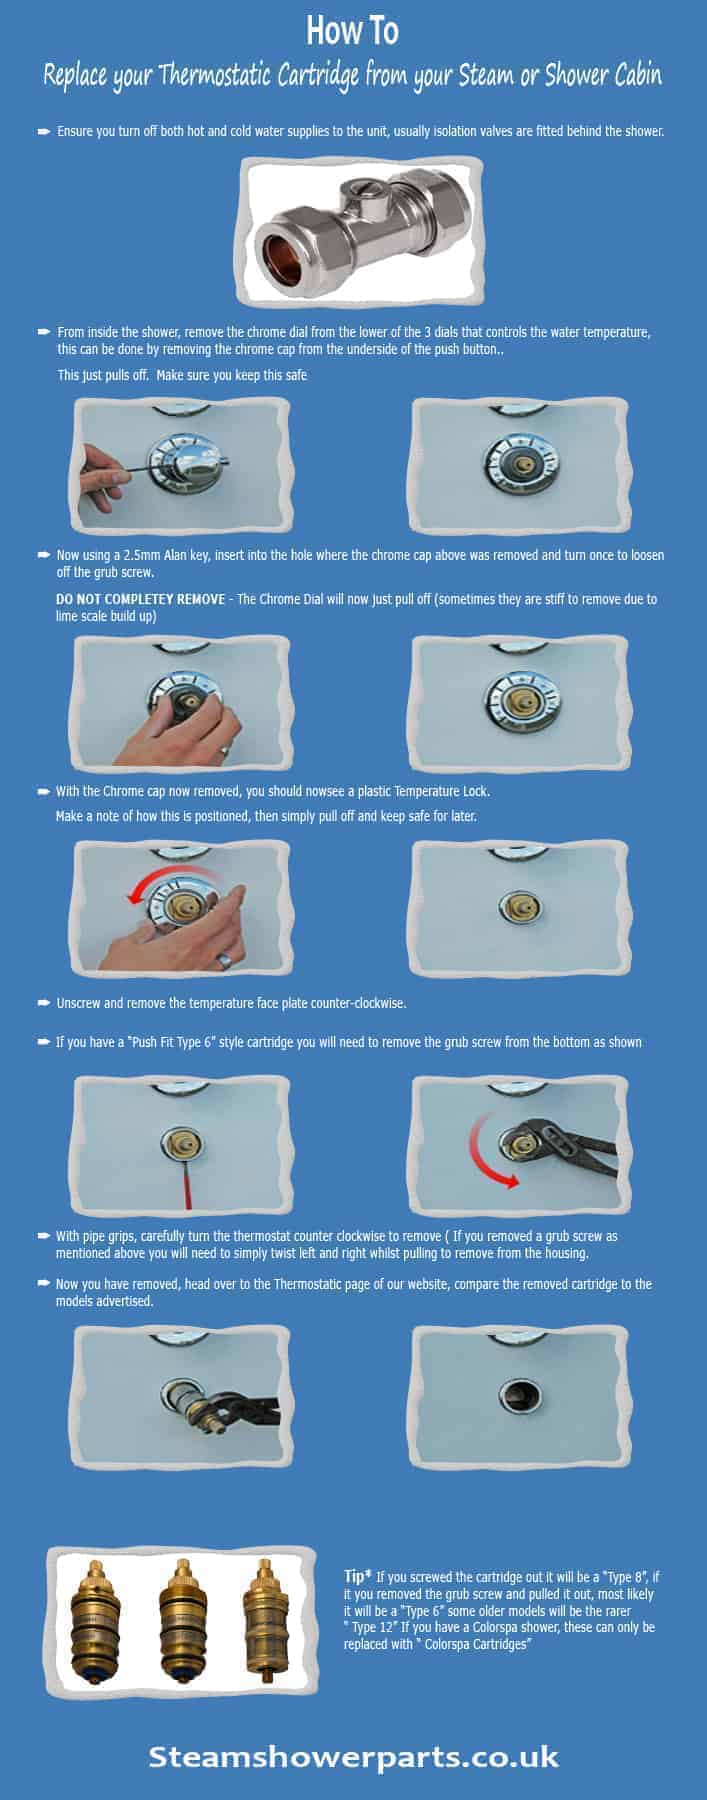 How to Replace a Thermostatic Cartridge Instructions